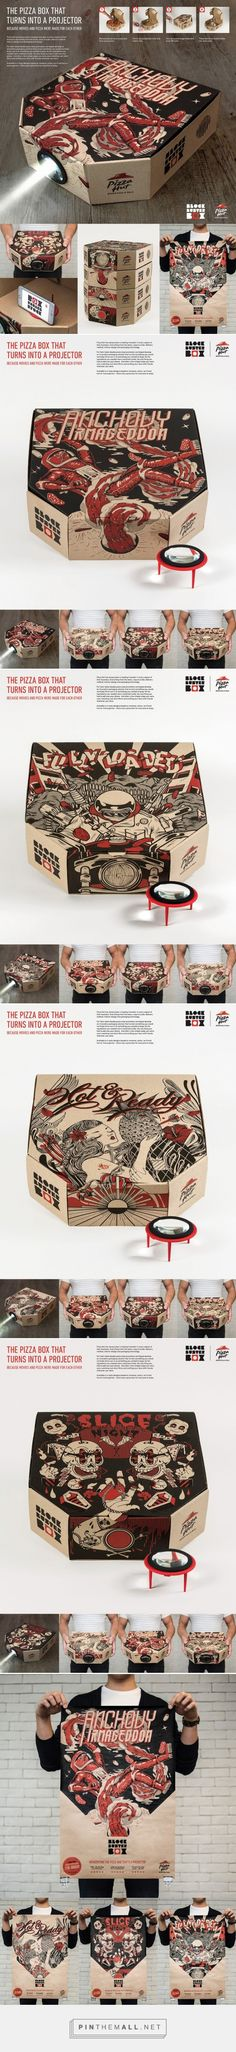 #Top10 #Packaging Projects You Shouldn't Miss In #May - http://www.packagingoftheworld.com/2015/06/10-projects-you-shouldnt-miss-in-may.html